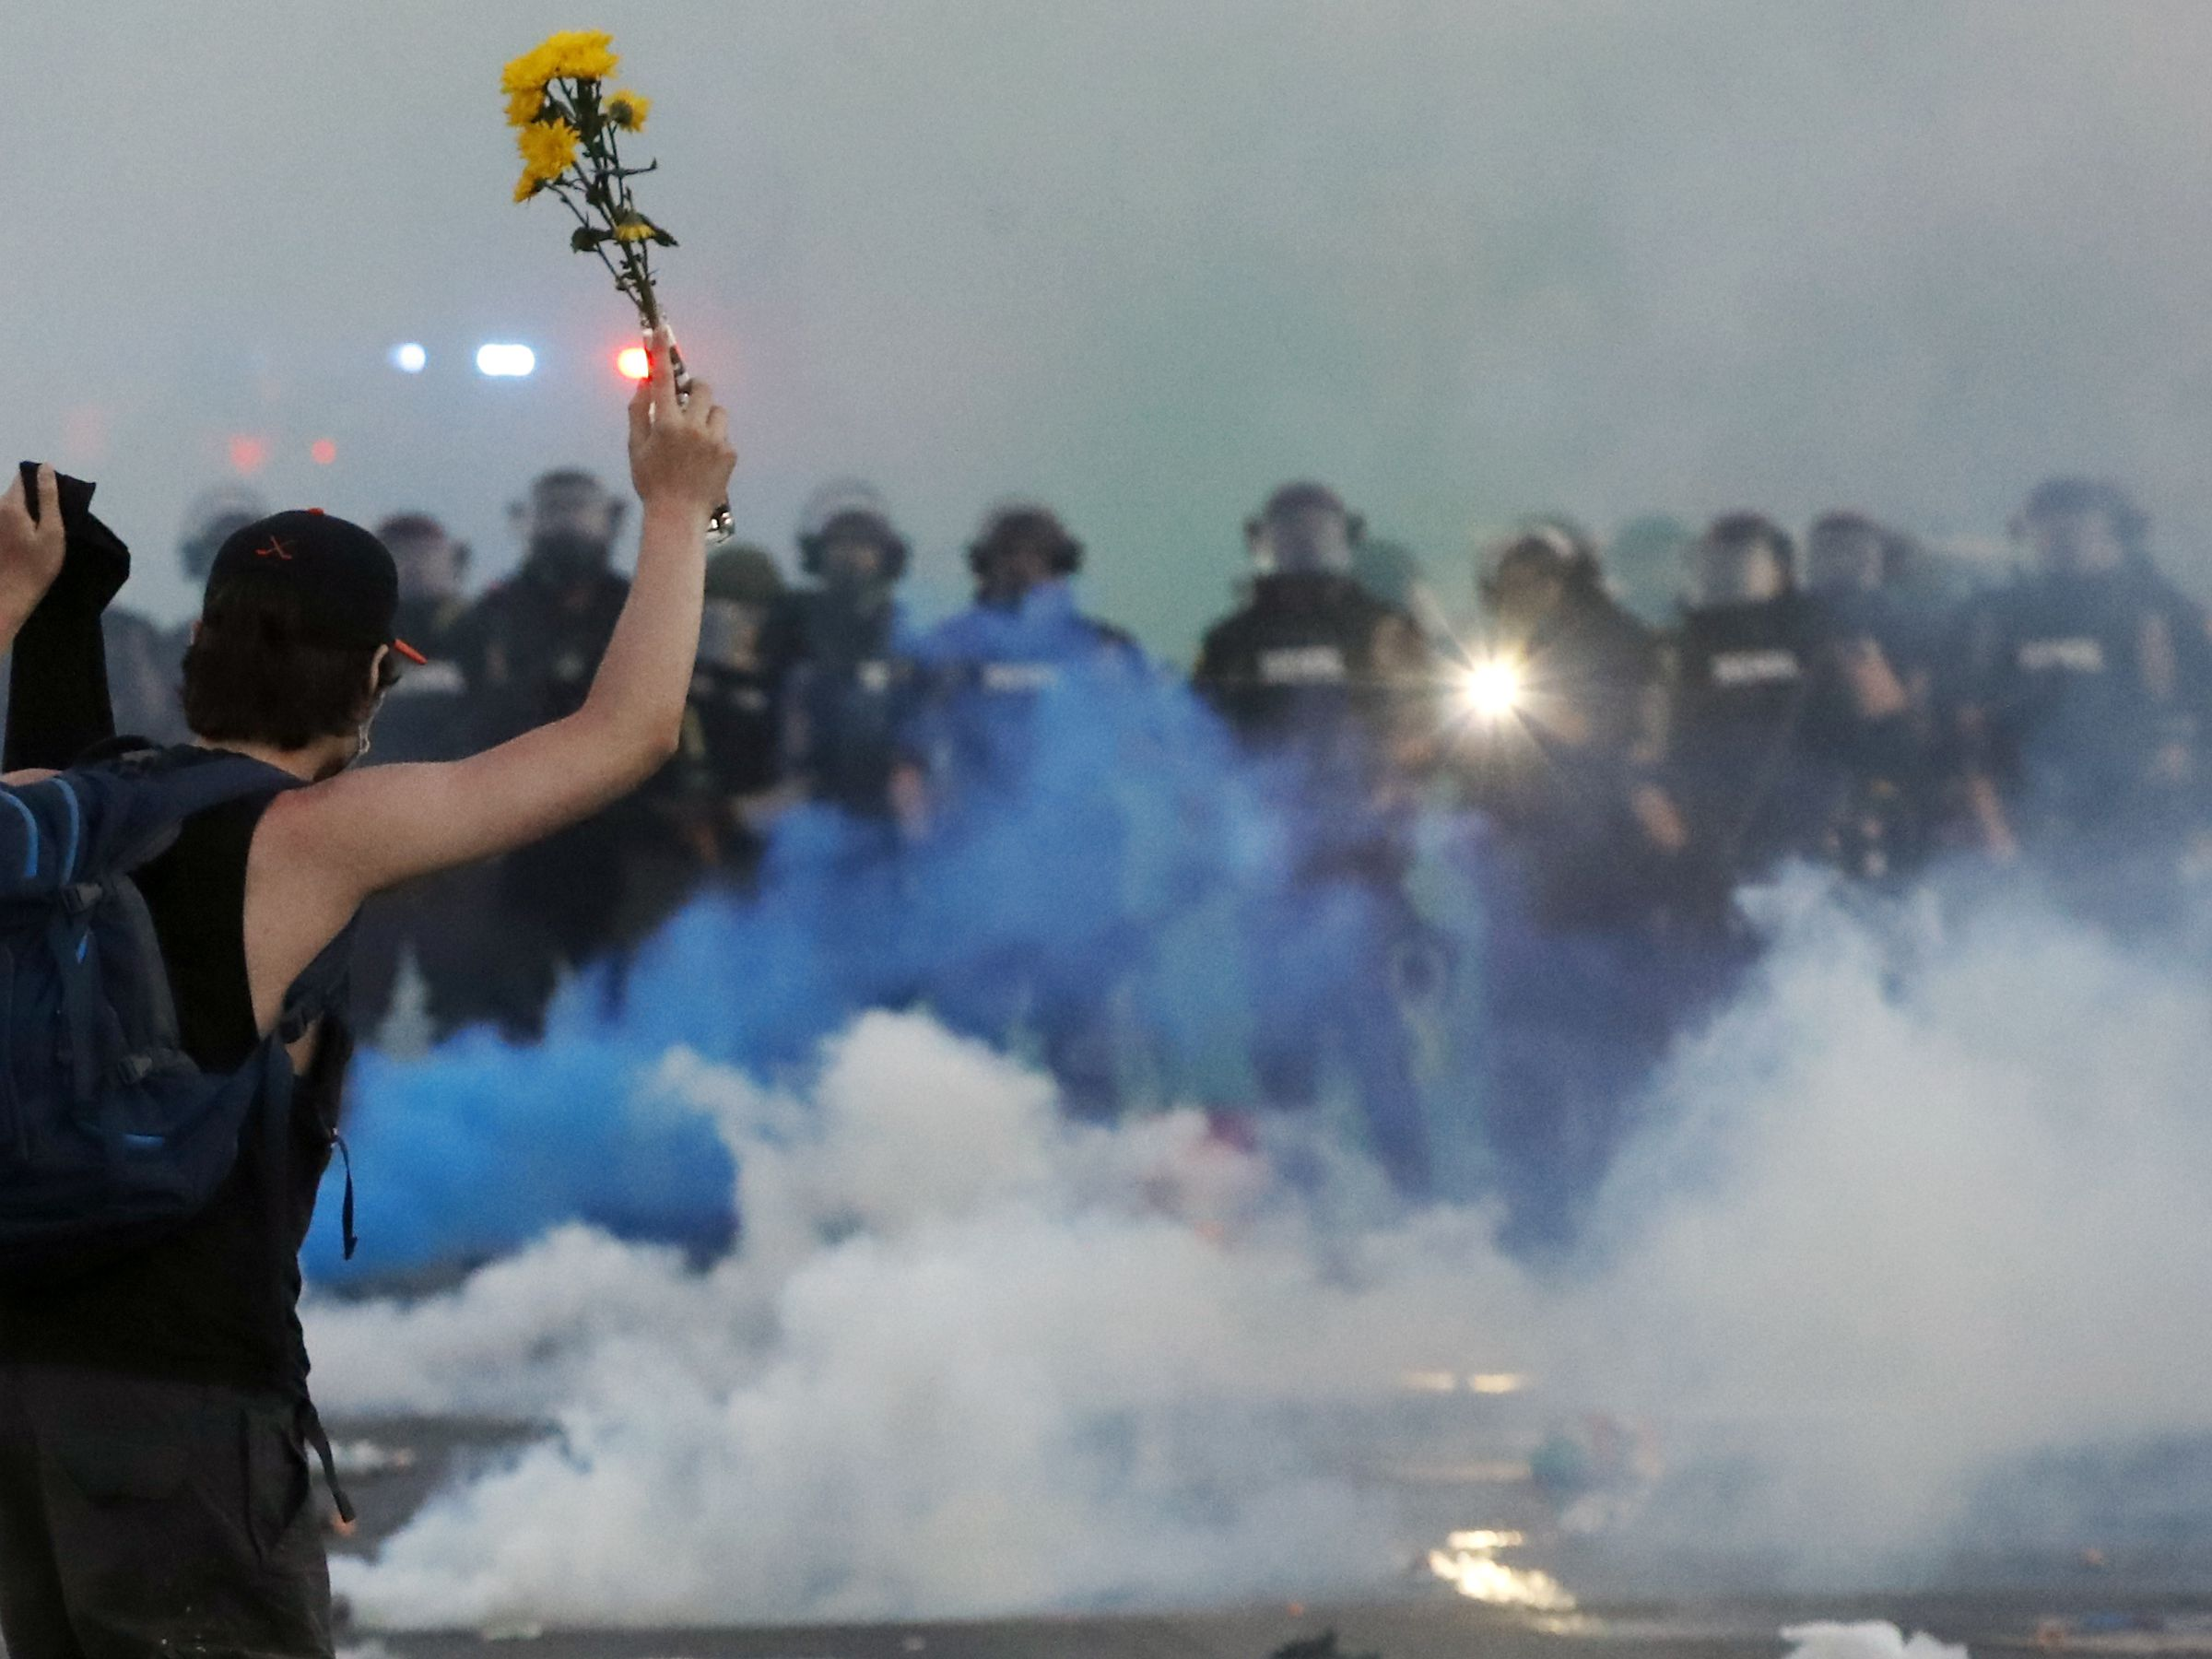 GRAPHIC: US cities assess protest damage, await another day of unrest